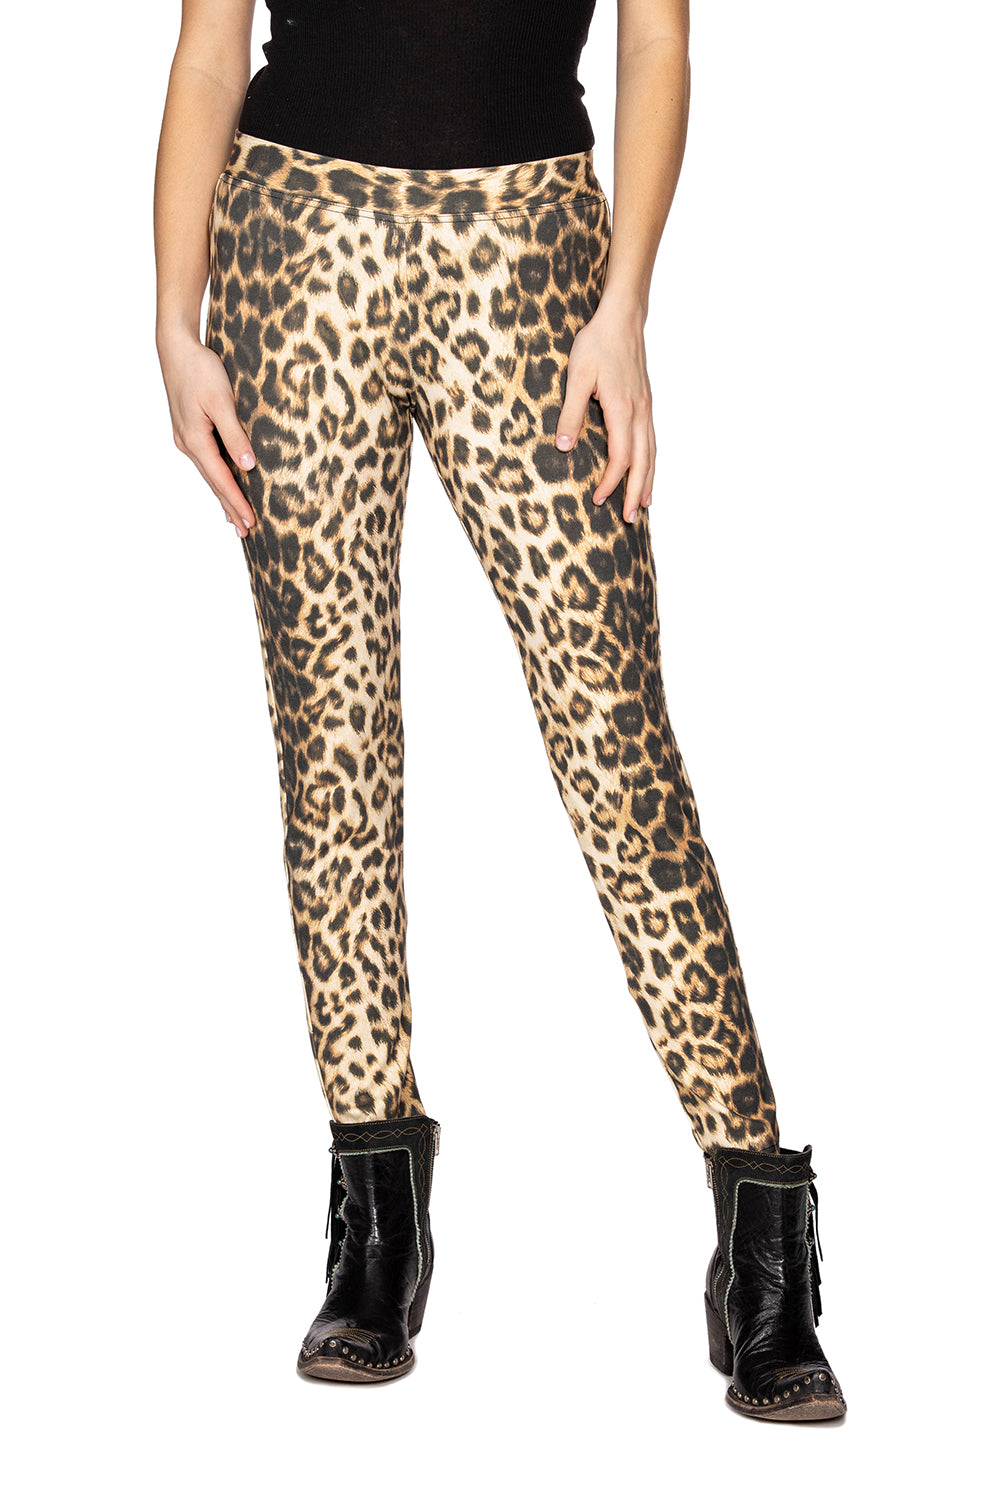 Tiger Cat Legging